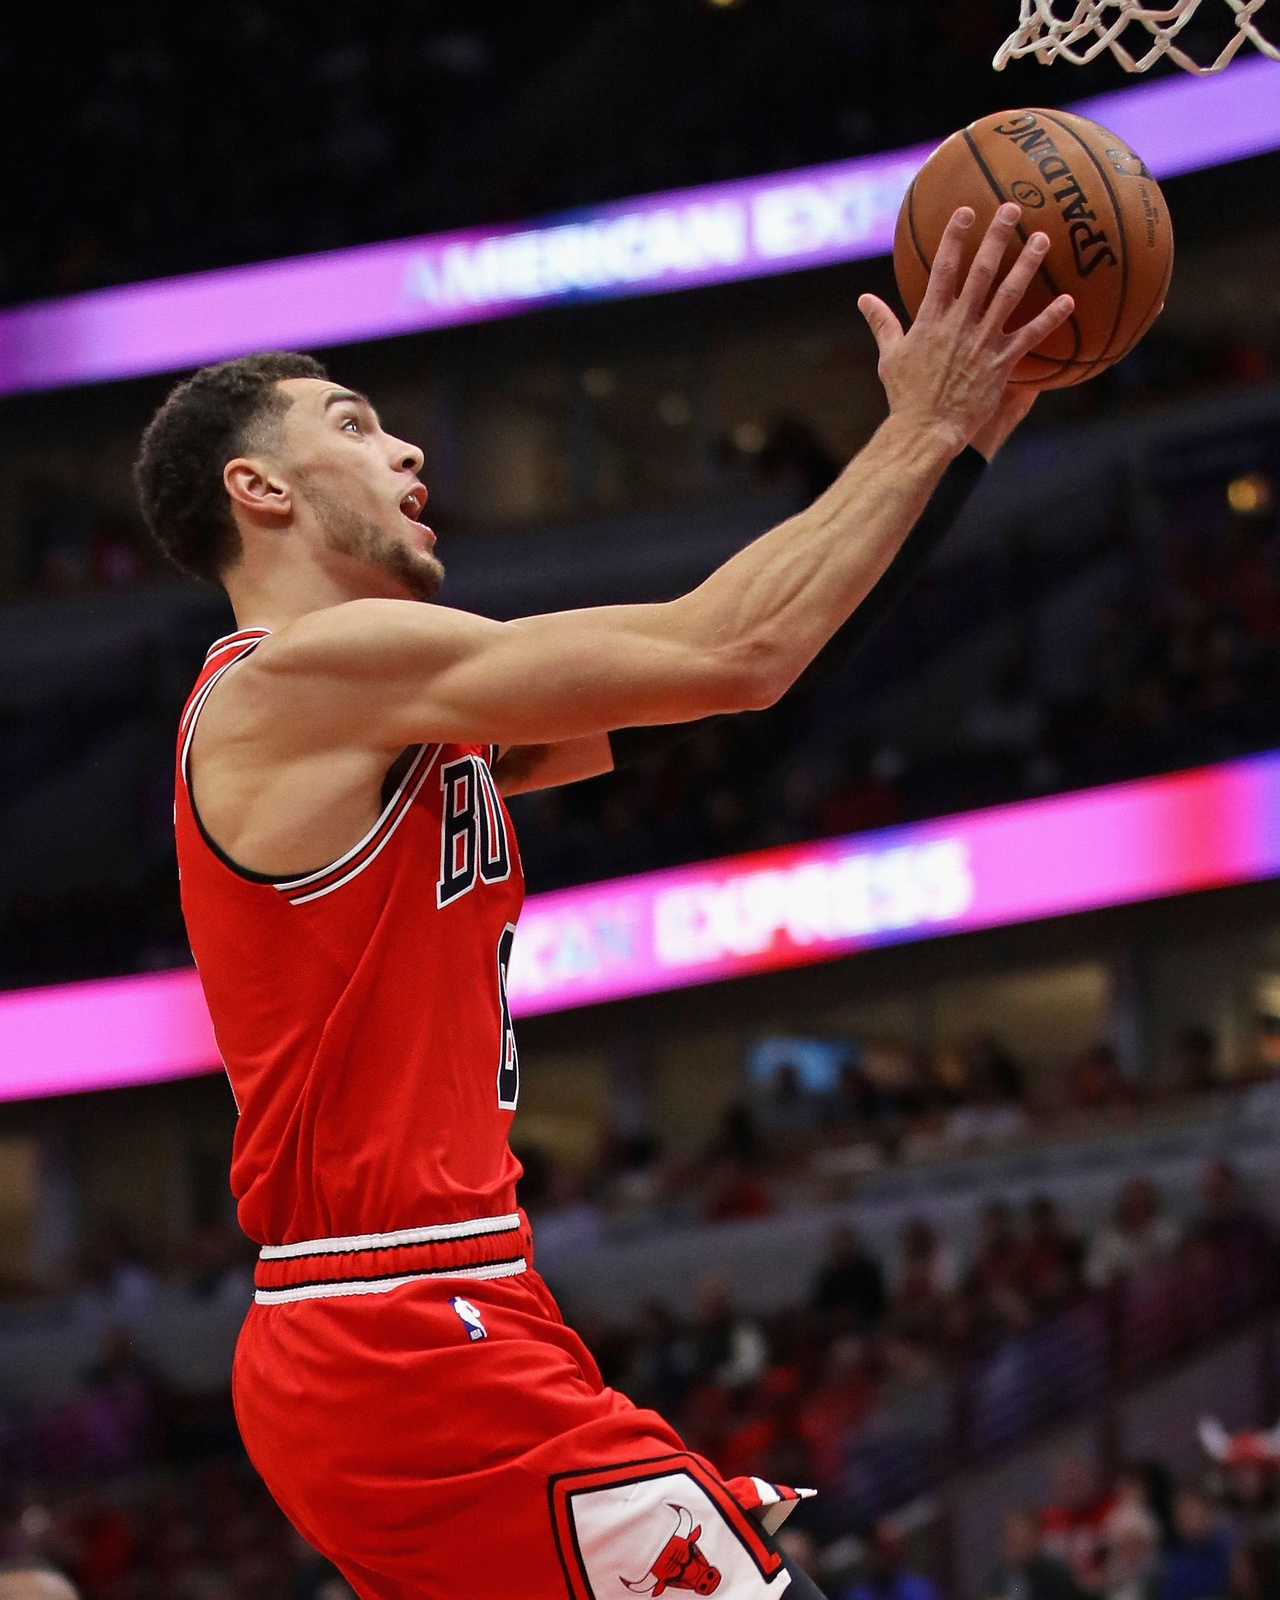 d828a0343e5c Zach LaVine  8 of the Chicago Bulls drives to the basket on his way to